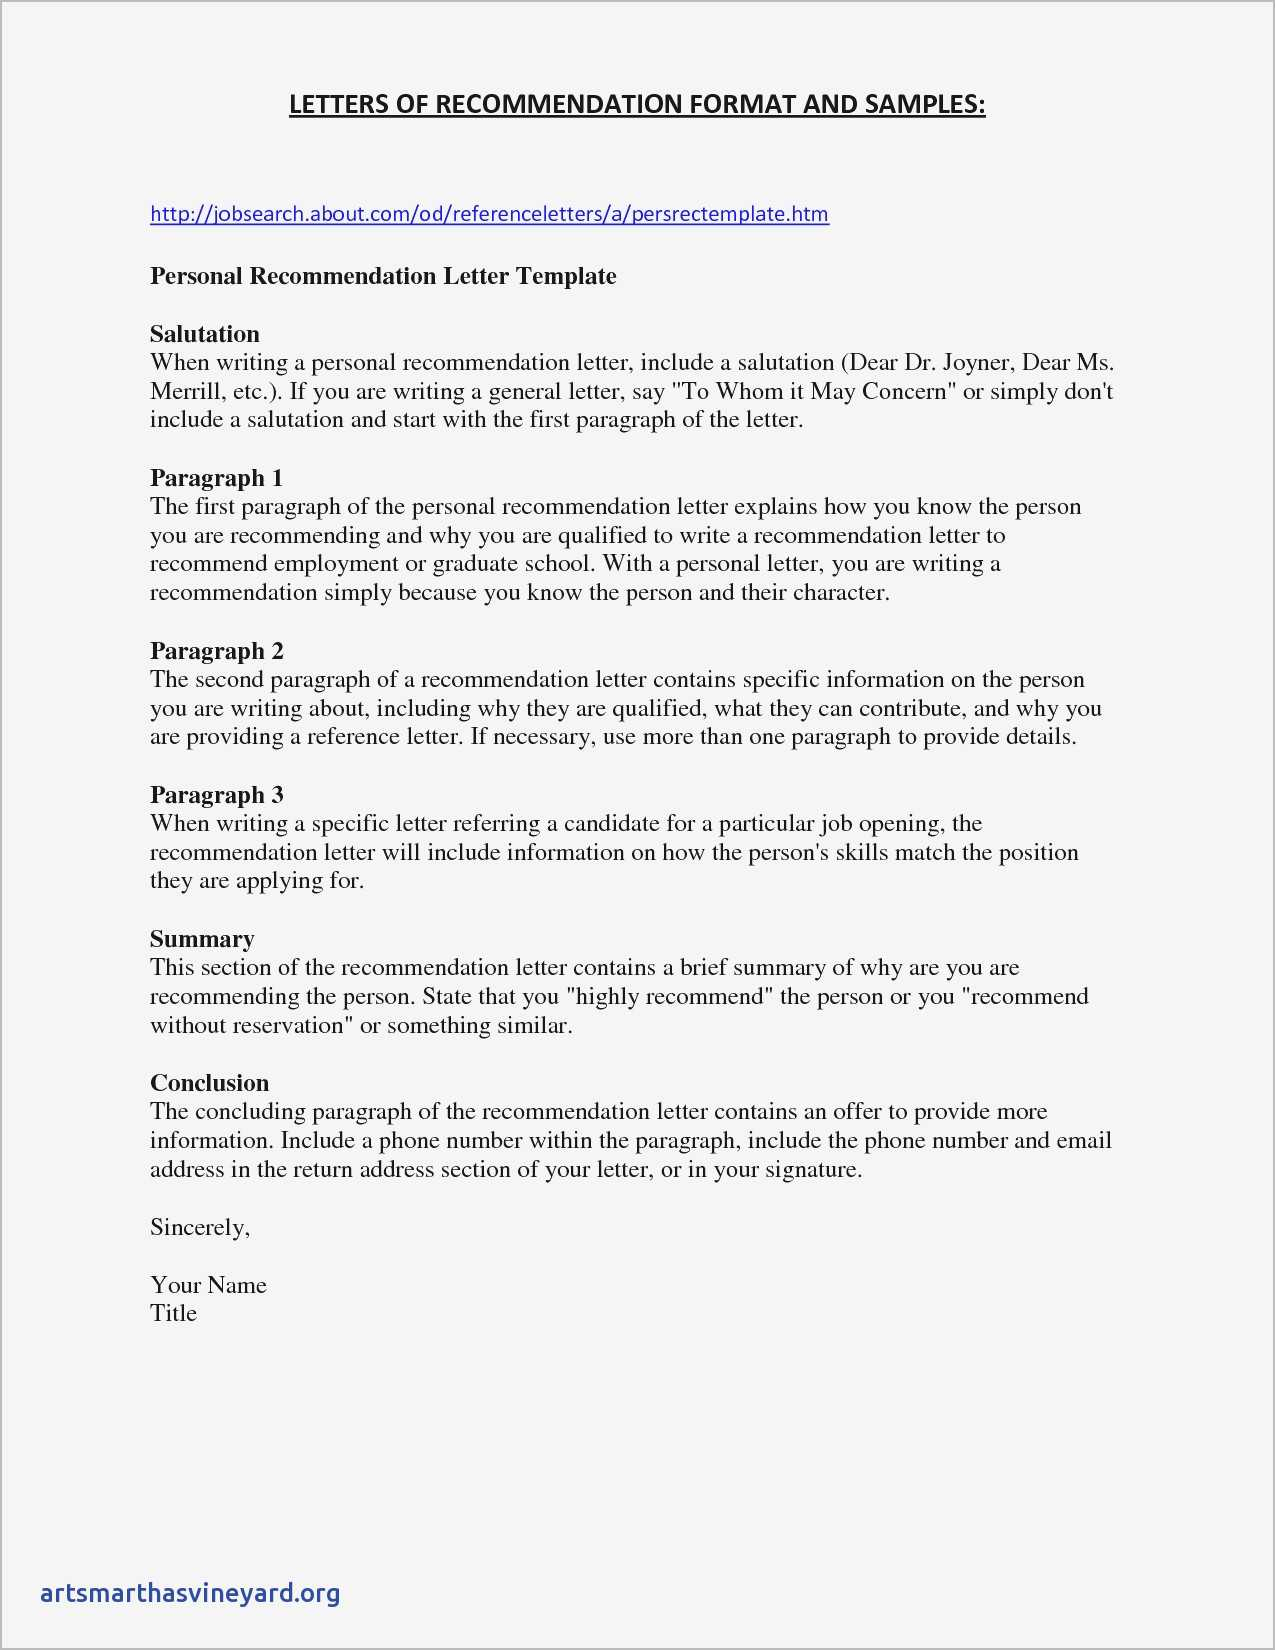 Personal Character Reference Letter Template - Sample Personal Reference Letter for A Friend Samples From Character